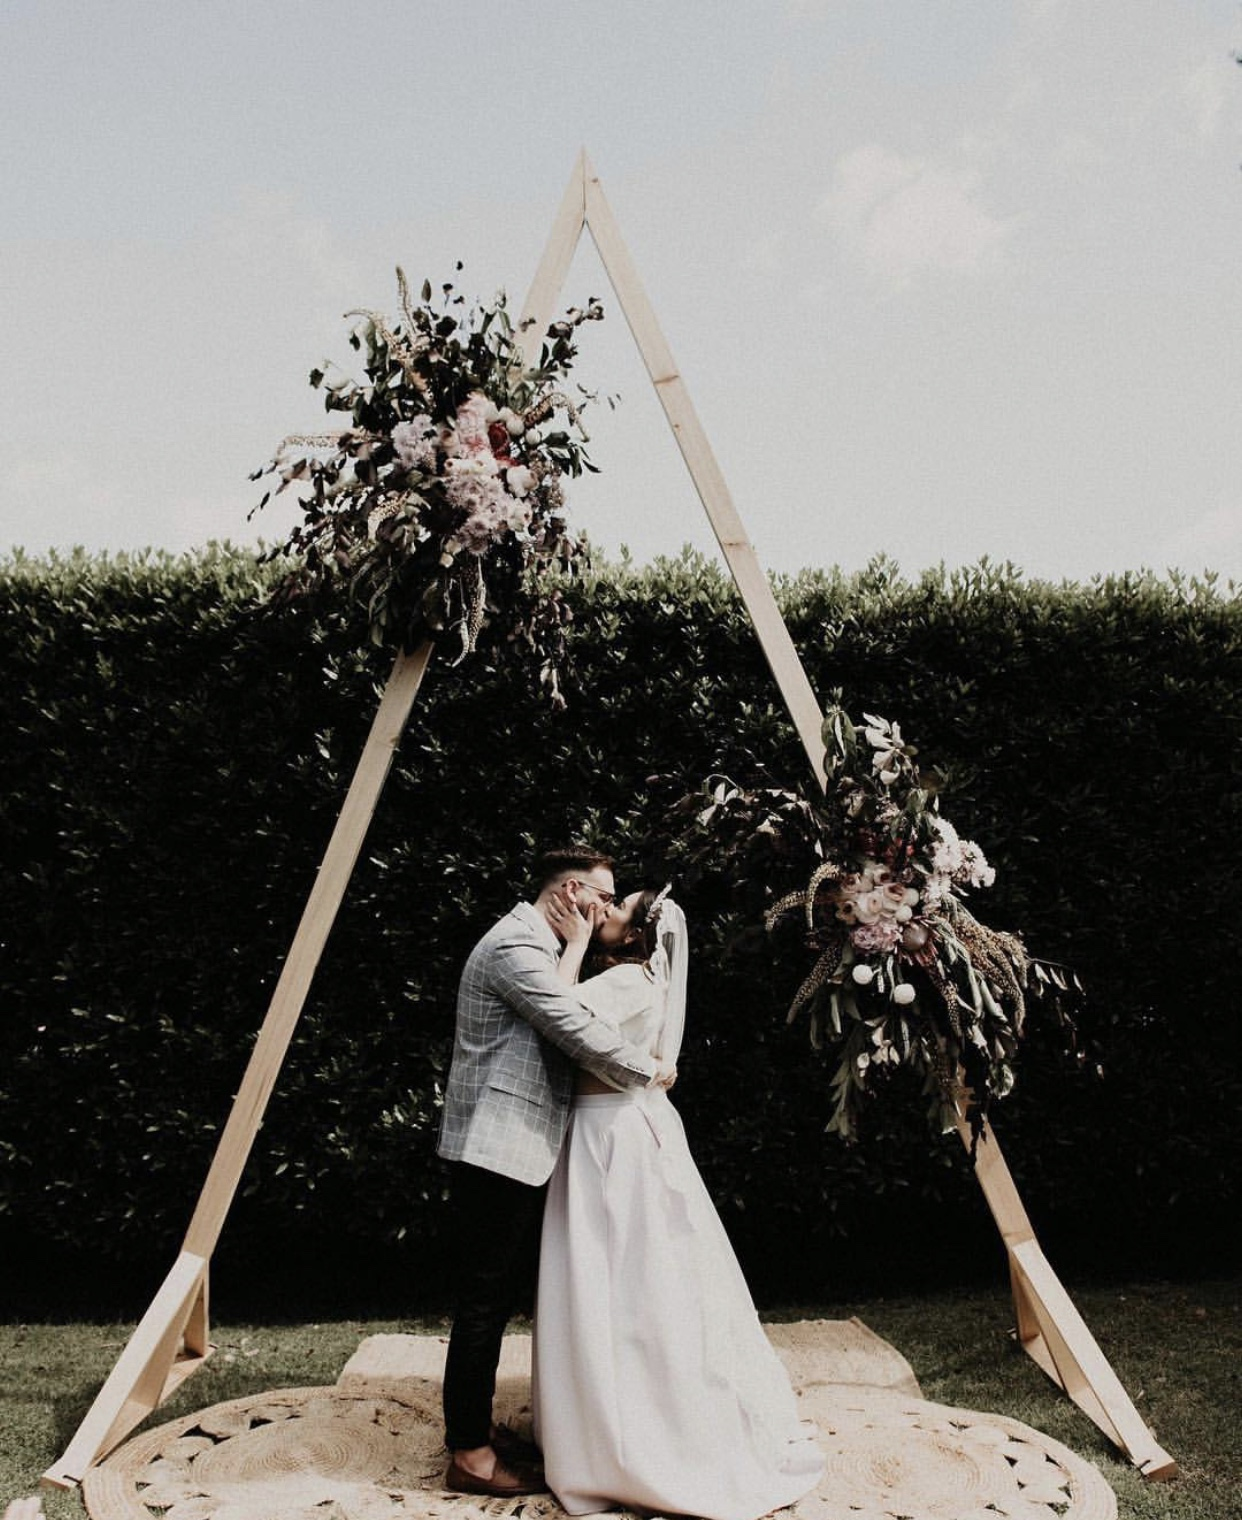 Rustic Wedding Arbors: Timber Triangular Arbor - A Day To